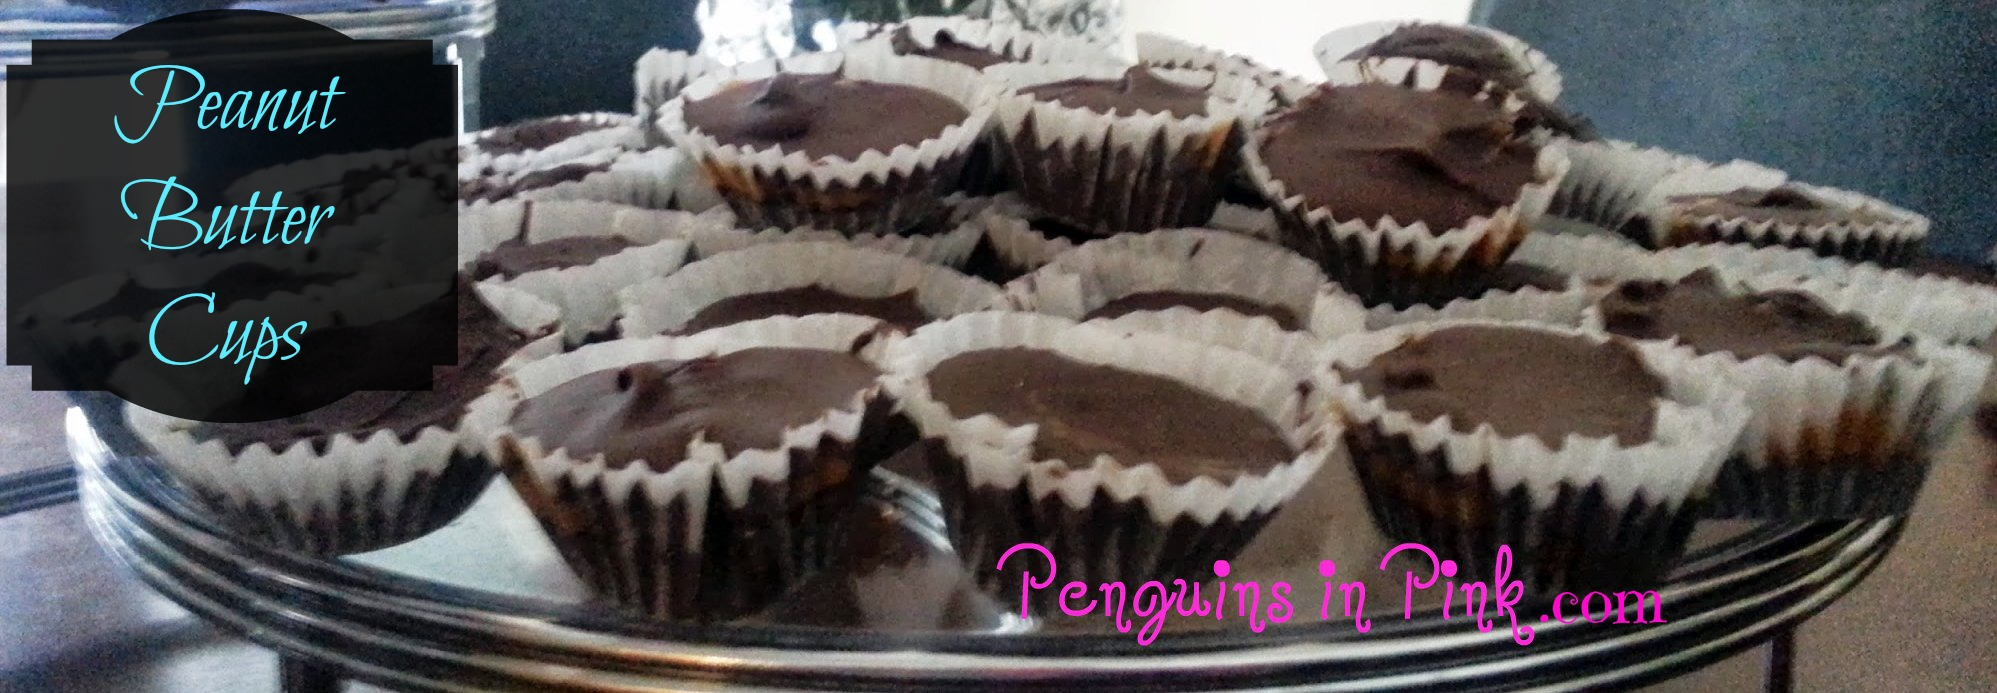 Homemade Peanut Butter Cups.  So chocolaty and delicious and much, much better than Reese's cups.